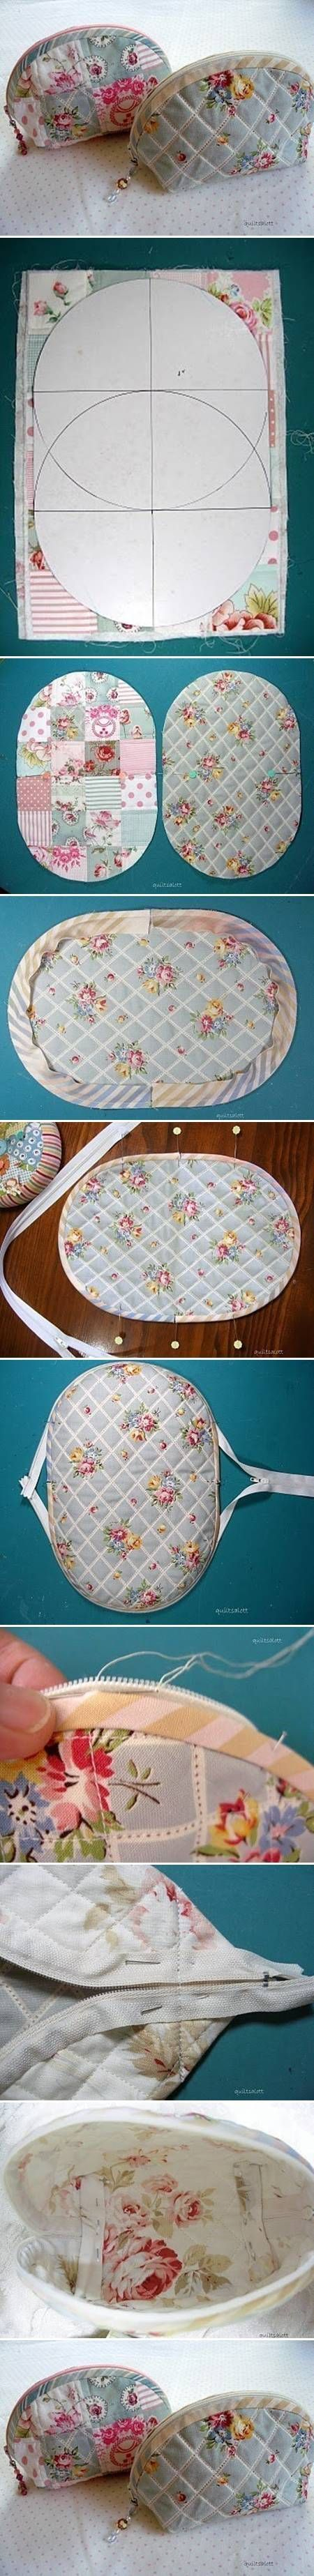 DIY Sew Makeup Bag DIY Projects